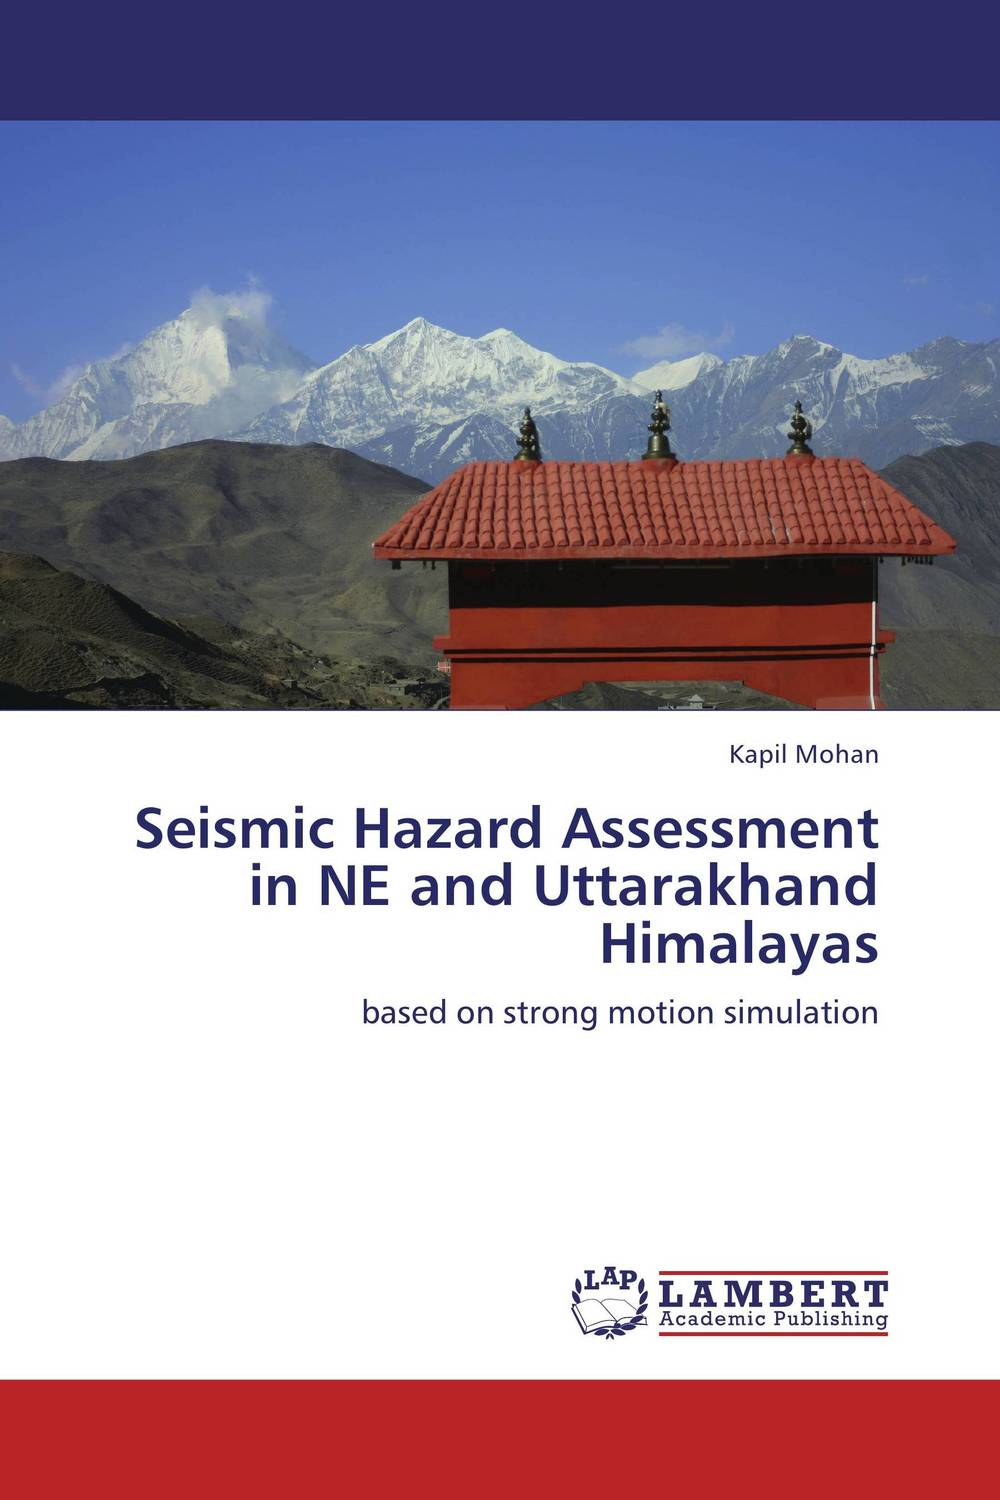 Seismic Hazard Assessment in NE and Uttarakhand Himalayas vector optics sphinx 1x22 mini reflex compact green dot sight scope very light with 20mm weaver mount base